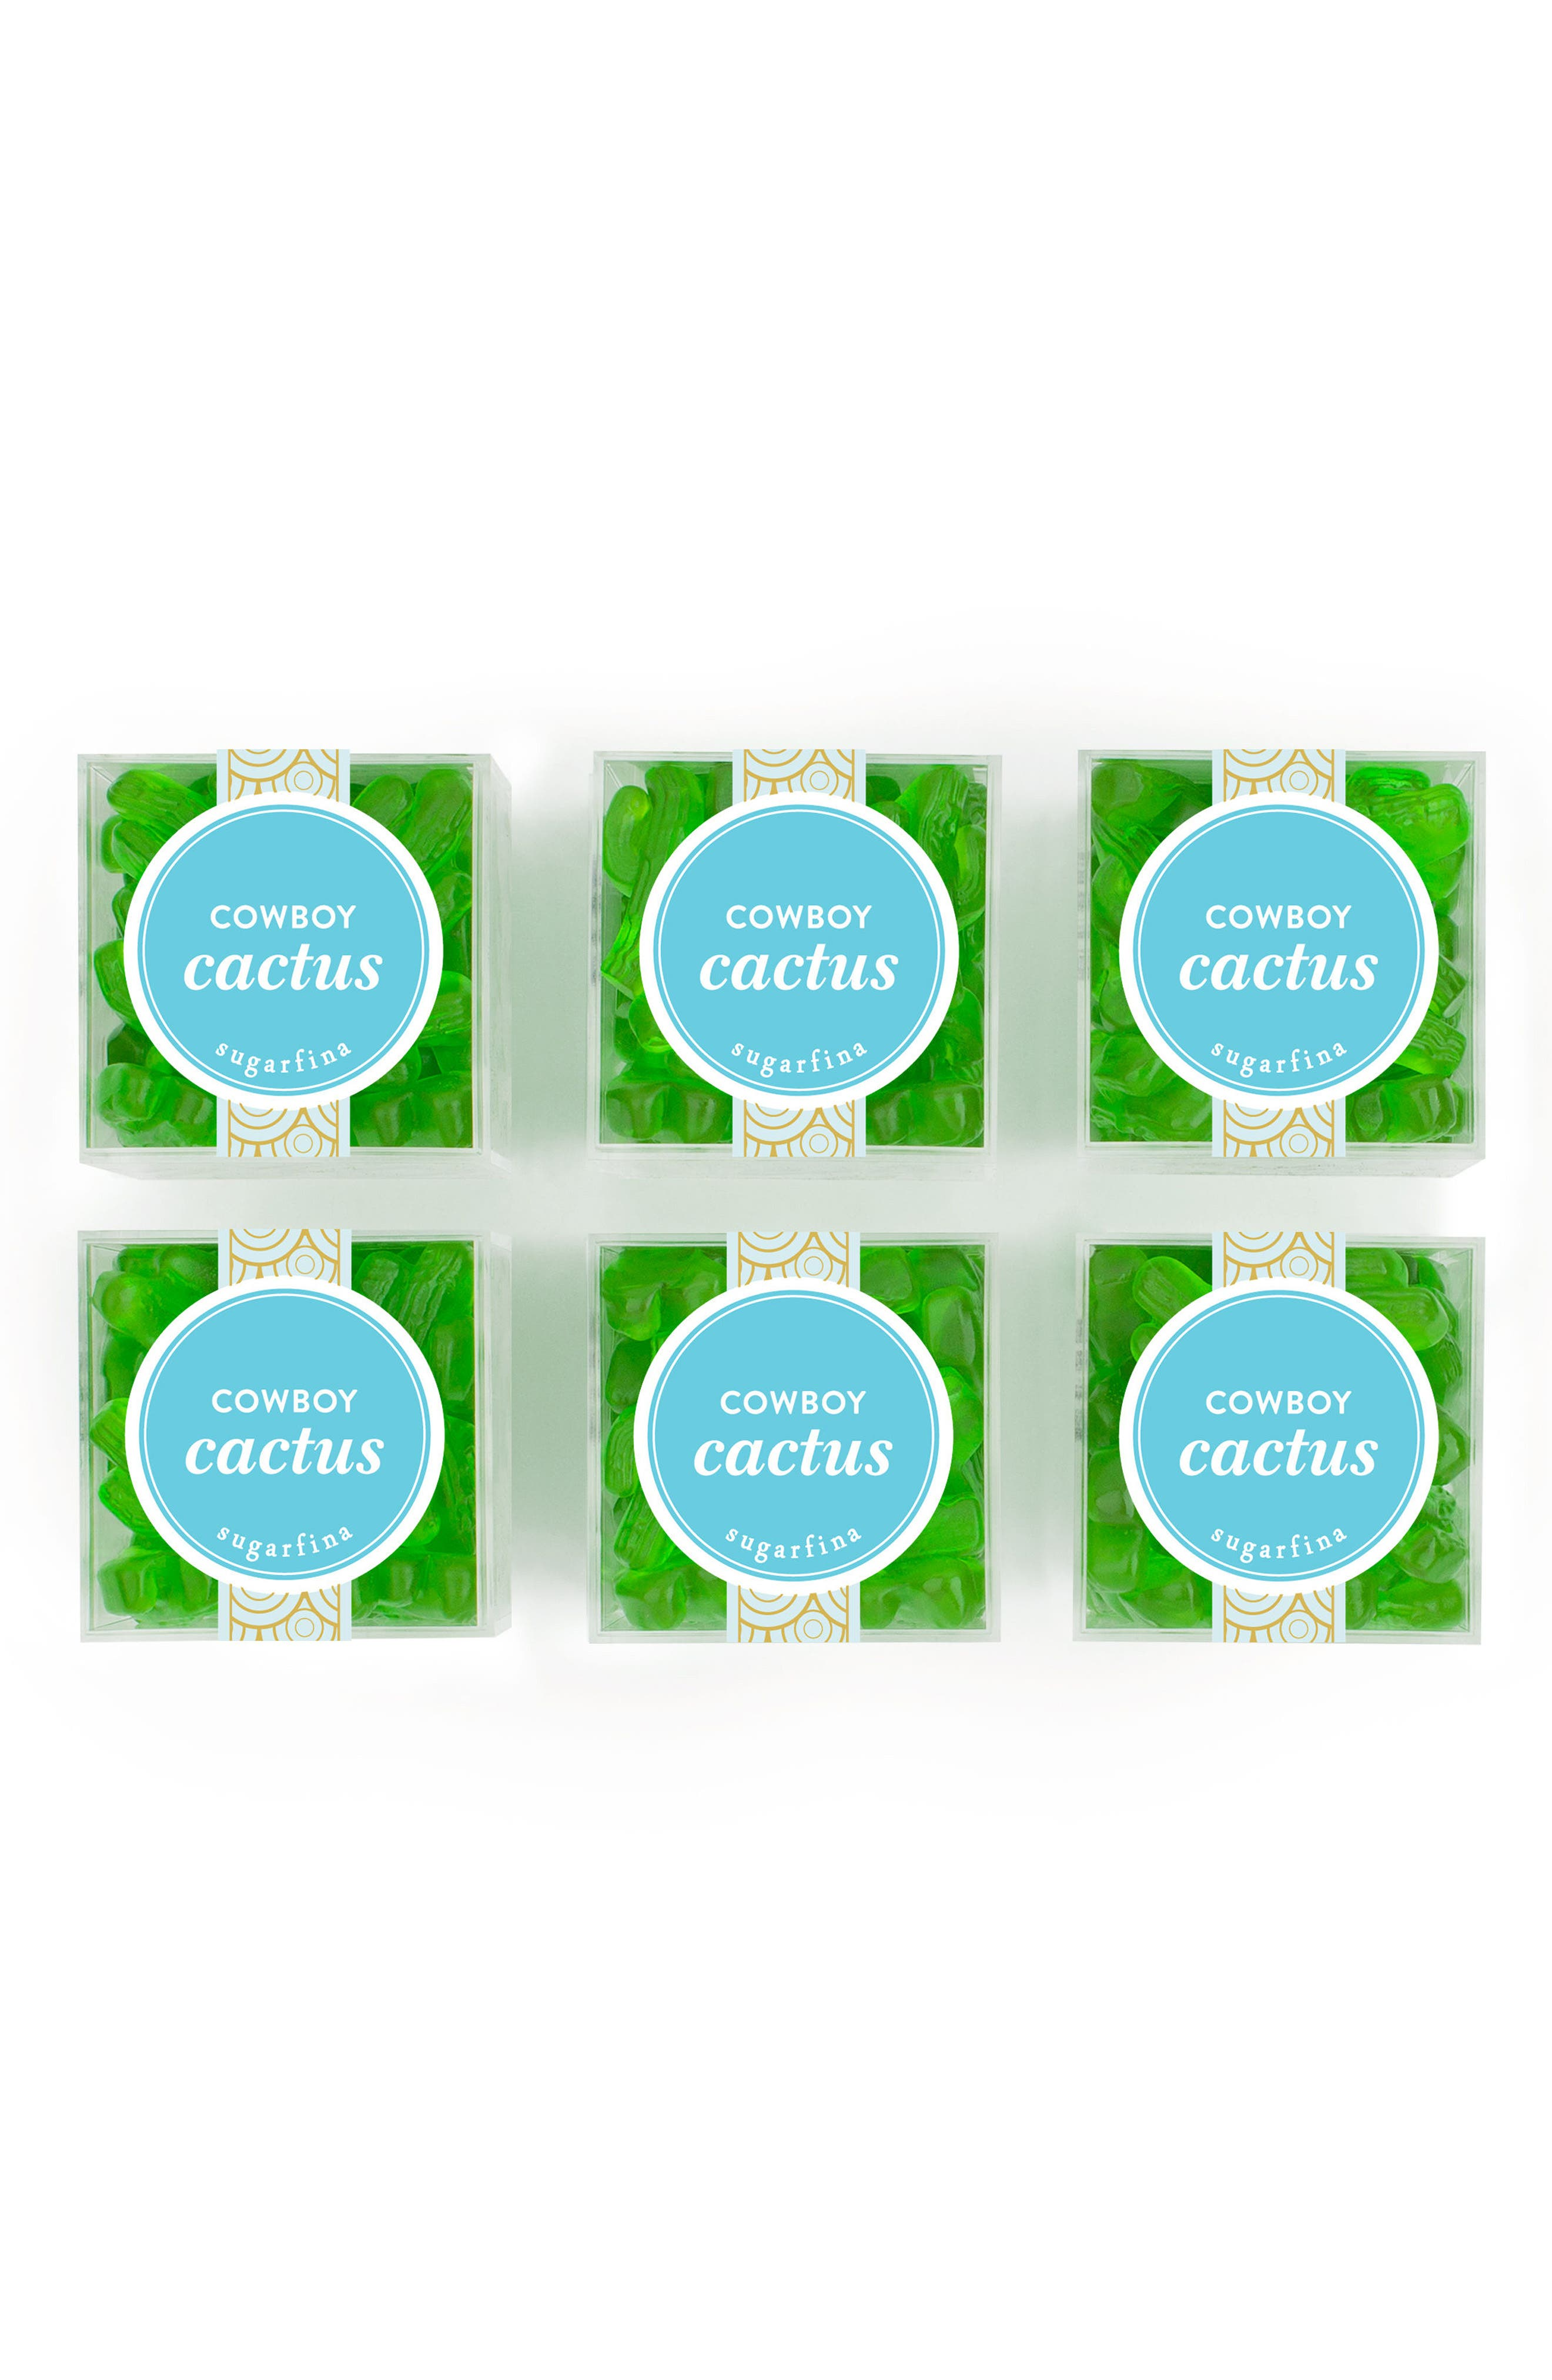 Alternate Image 1 Selected - sugarfina Cowboy Cactus Set of 6 Candy Cubes